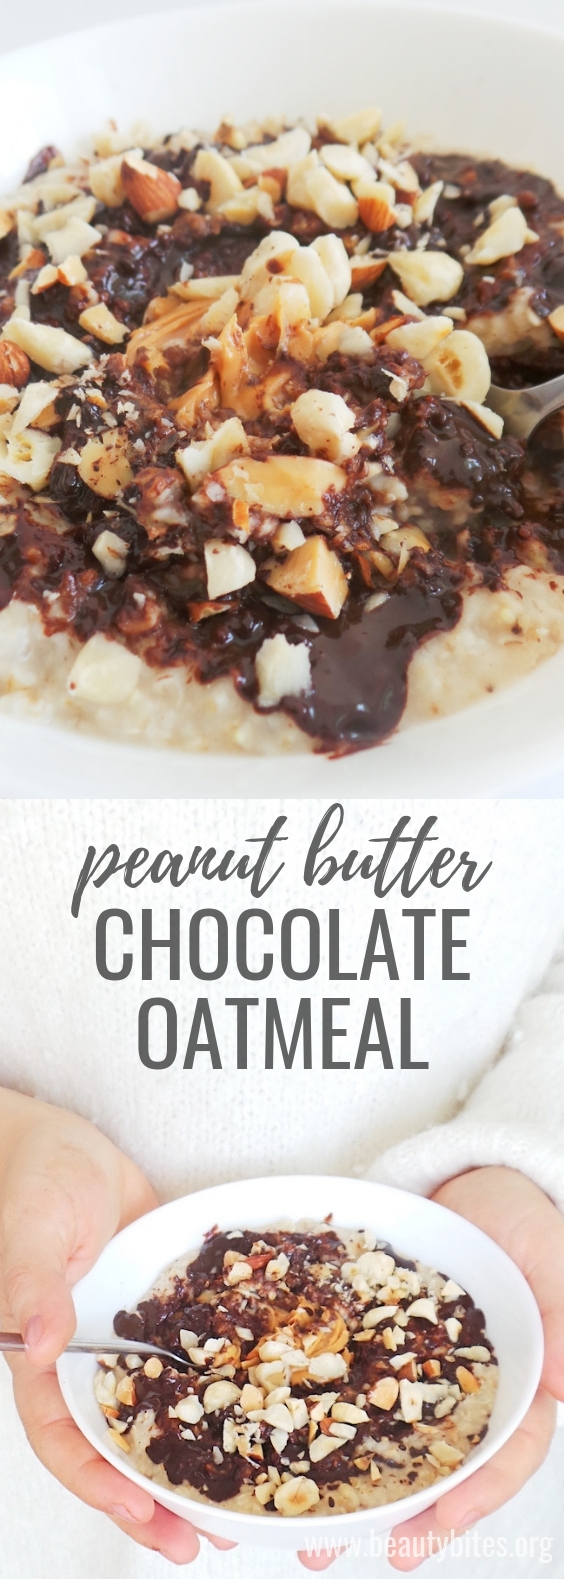 Healthy Peanut butter and chocolate oatmeal! Super easy healthy breakfast that I often misuse as dessert. This healthy vegan breakfast will warm your heart and make you full for a LONG time! Comes together in minutes